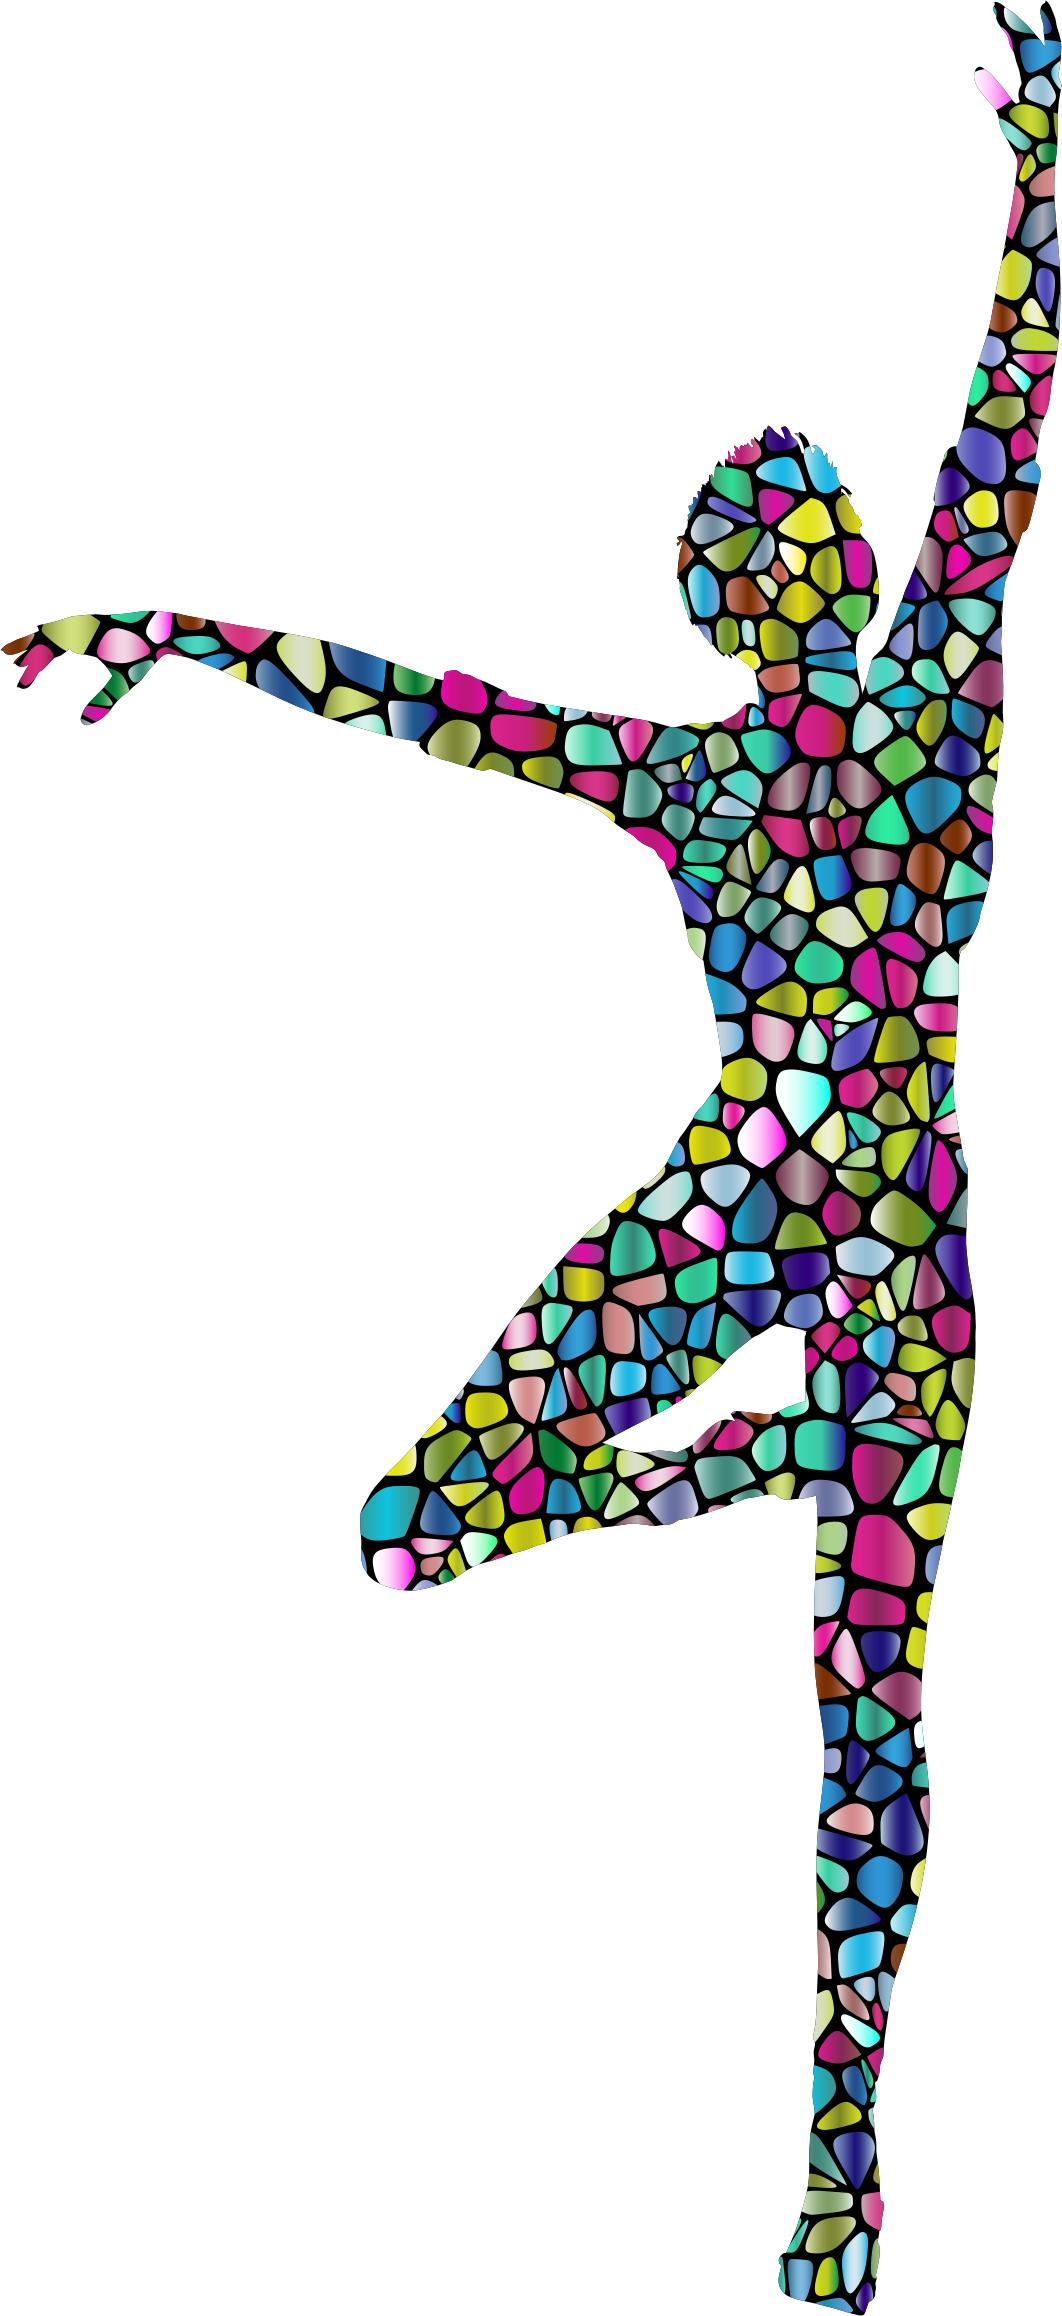 1062x2316 Polyprismatic Tiled Dancing Woman Silhouette With Background Icons